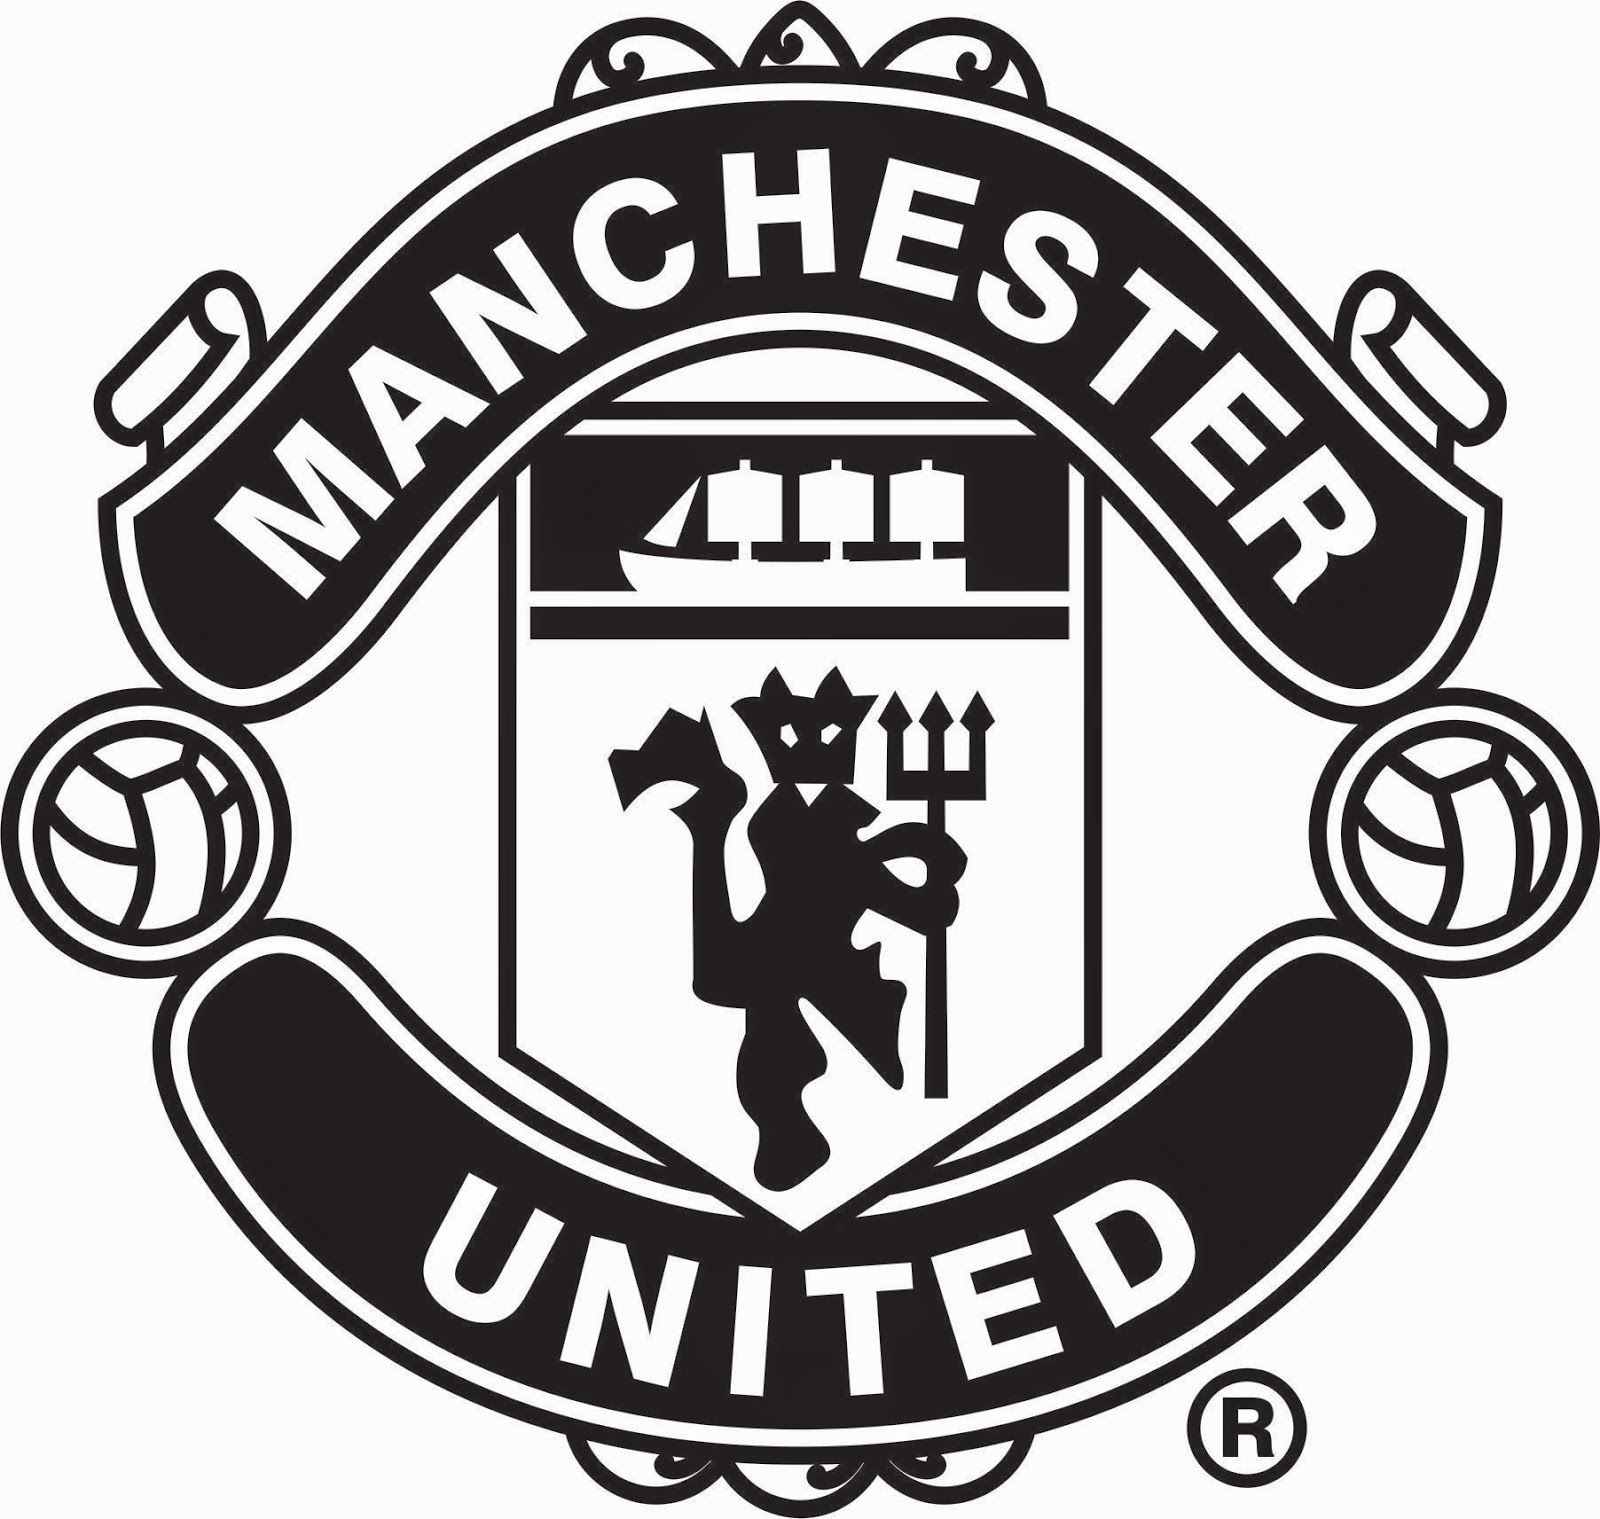 United Tickets, Silhouette Files, Wedding Ideas, Silhouette Projects, Manchester  United, Airline Flights, Searching, Terrarium, Silhouettes